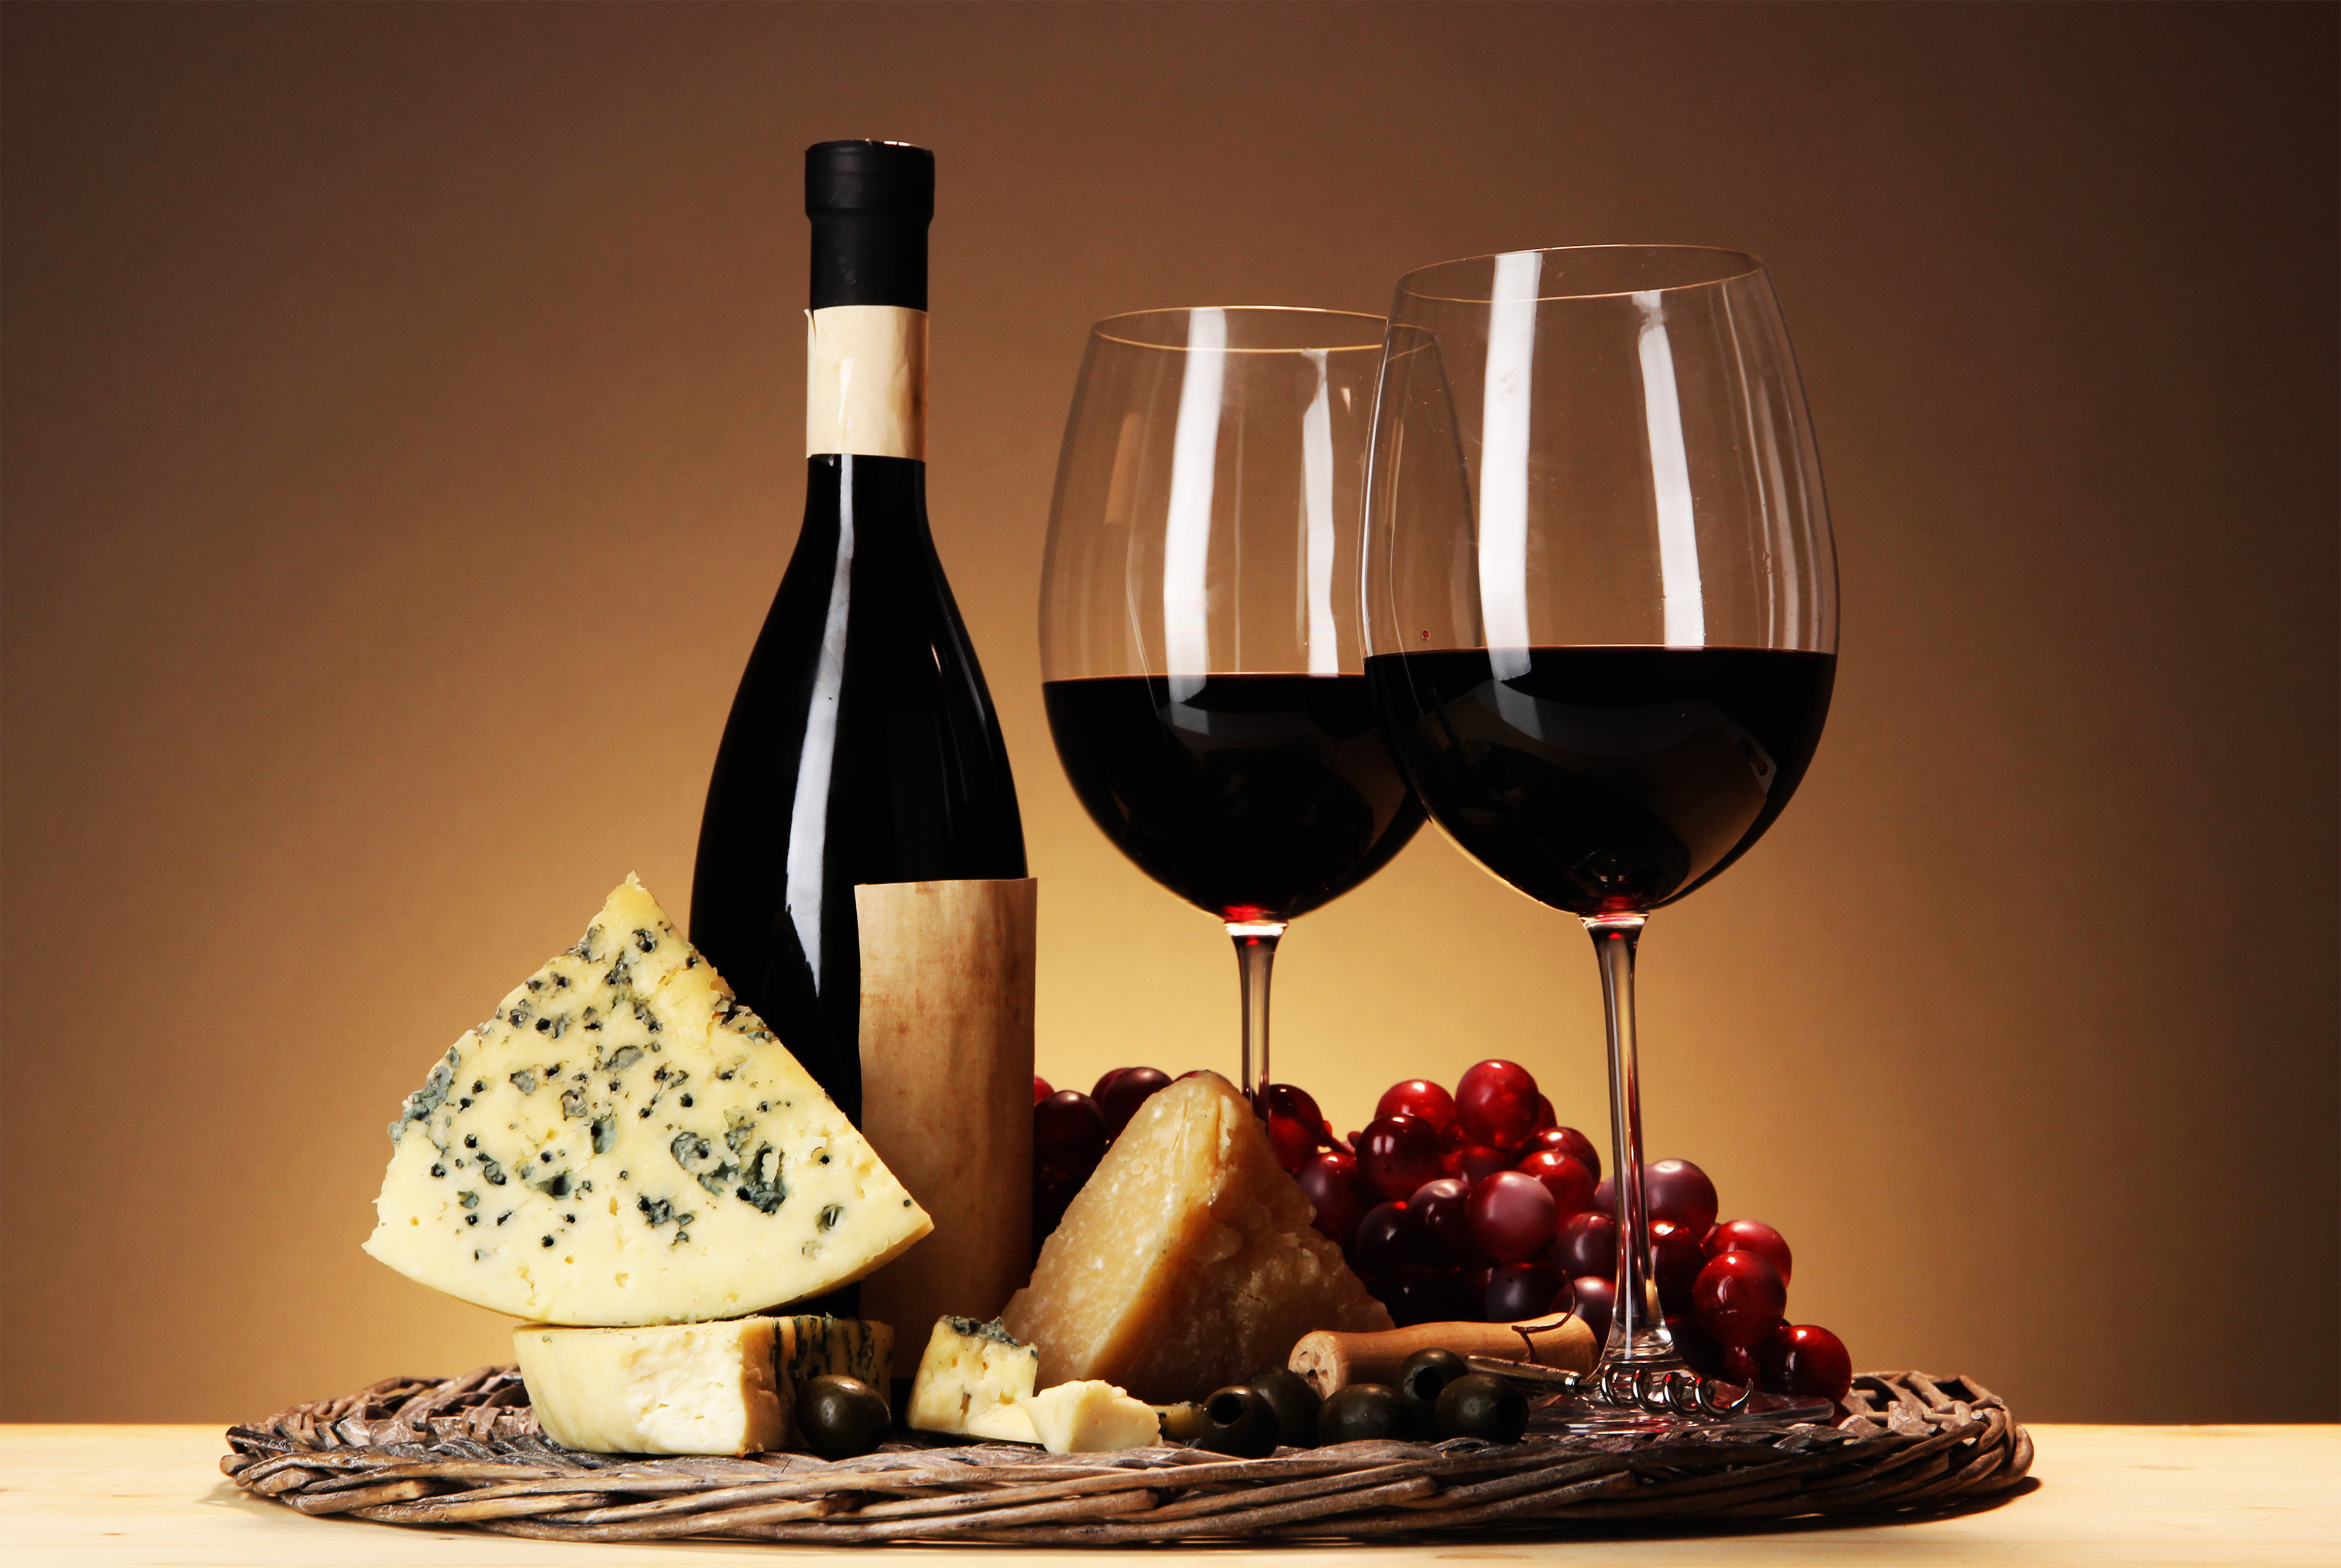 My Favorite Wine and Cheese-January 22 at 4:00 p.m.